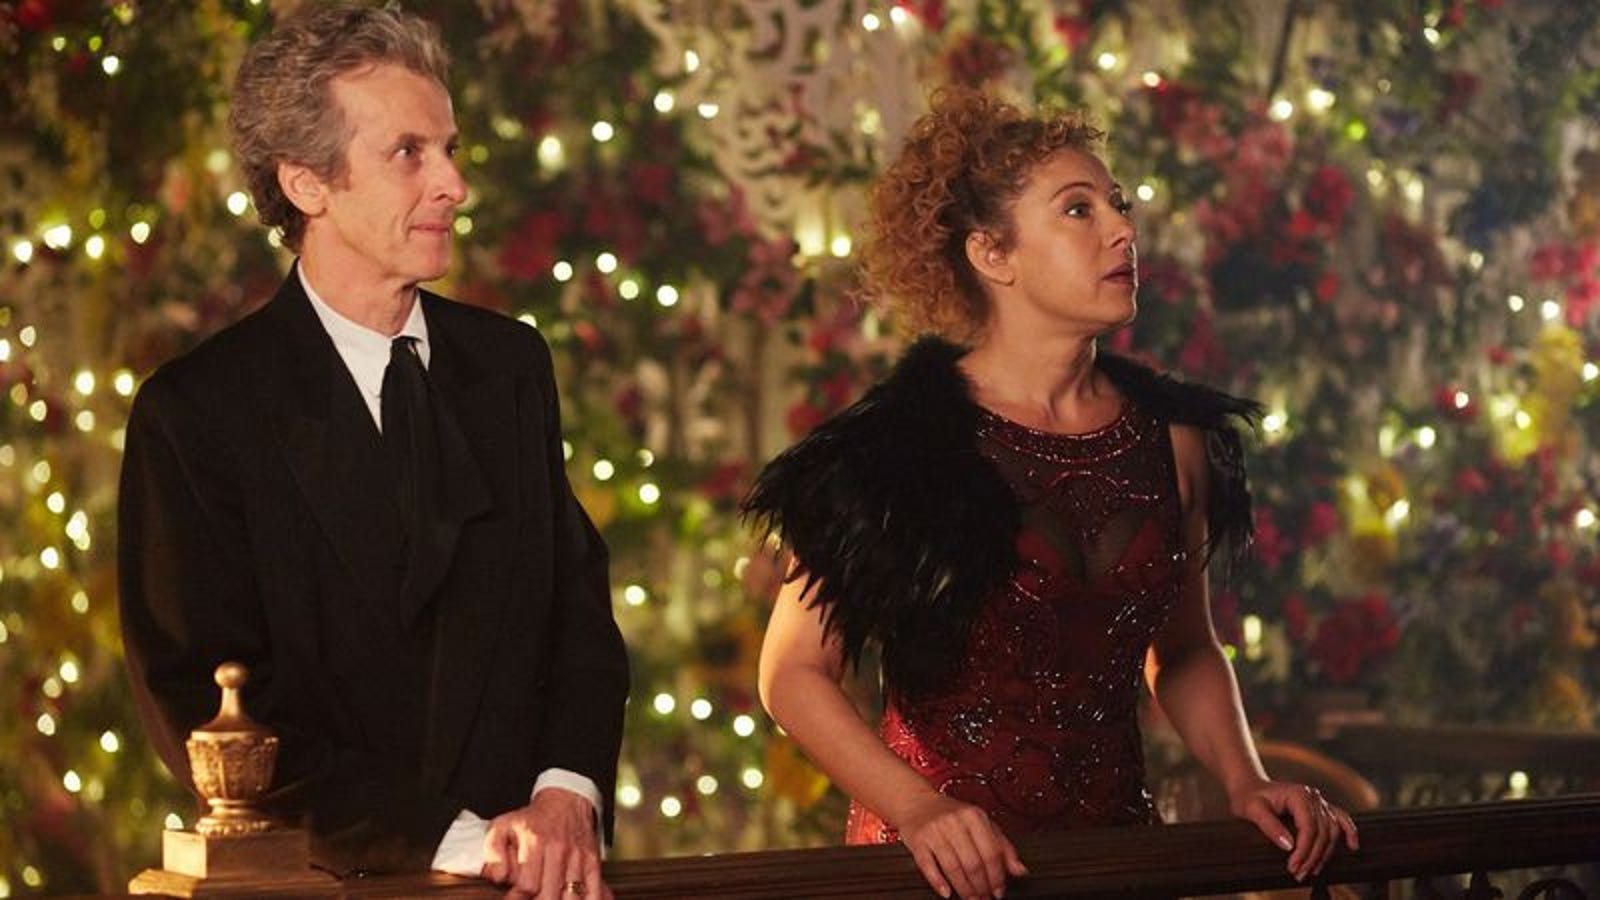 A deeply silly Doctor Who reunion takes an emotional turn